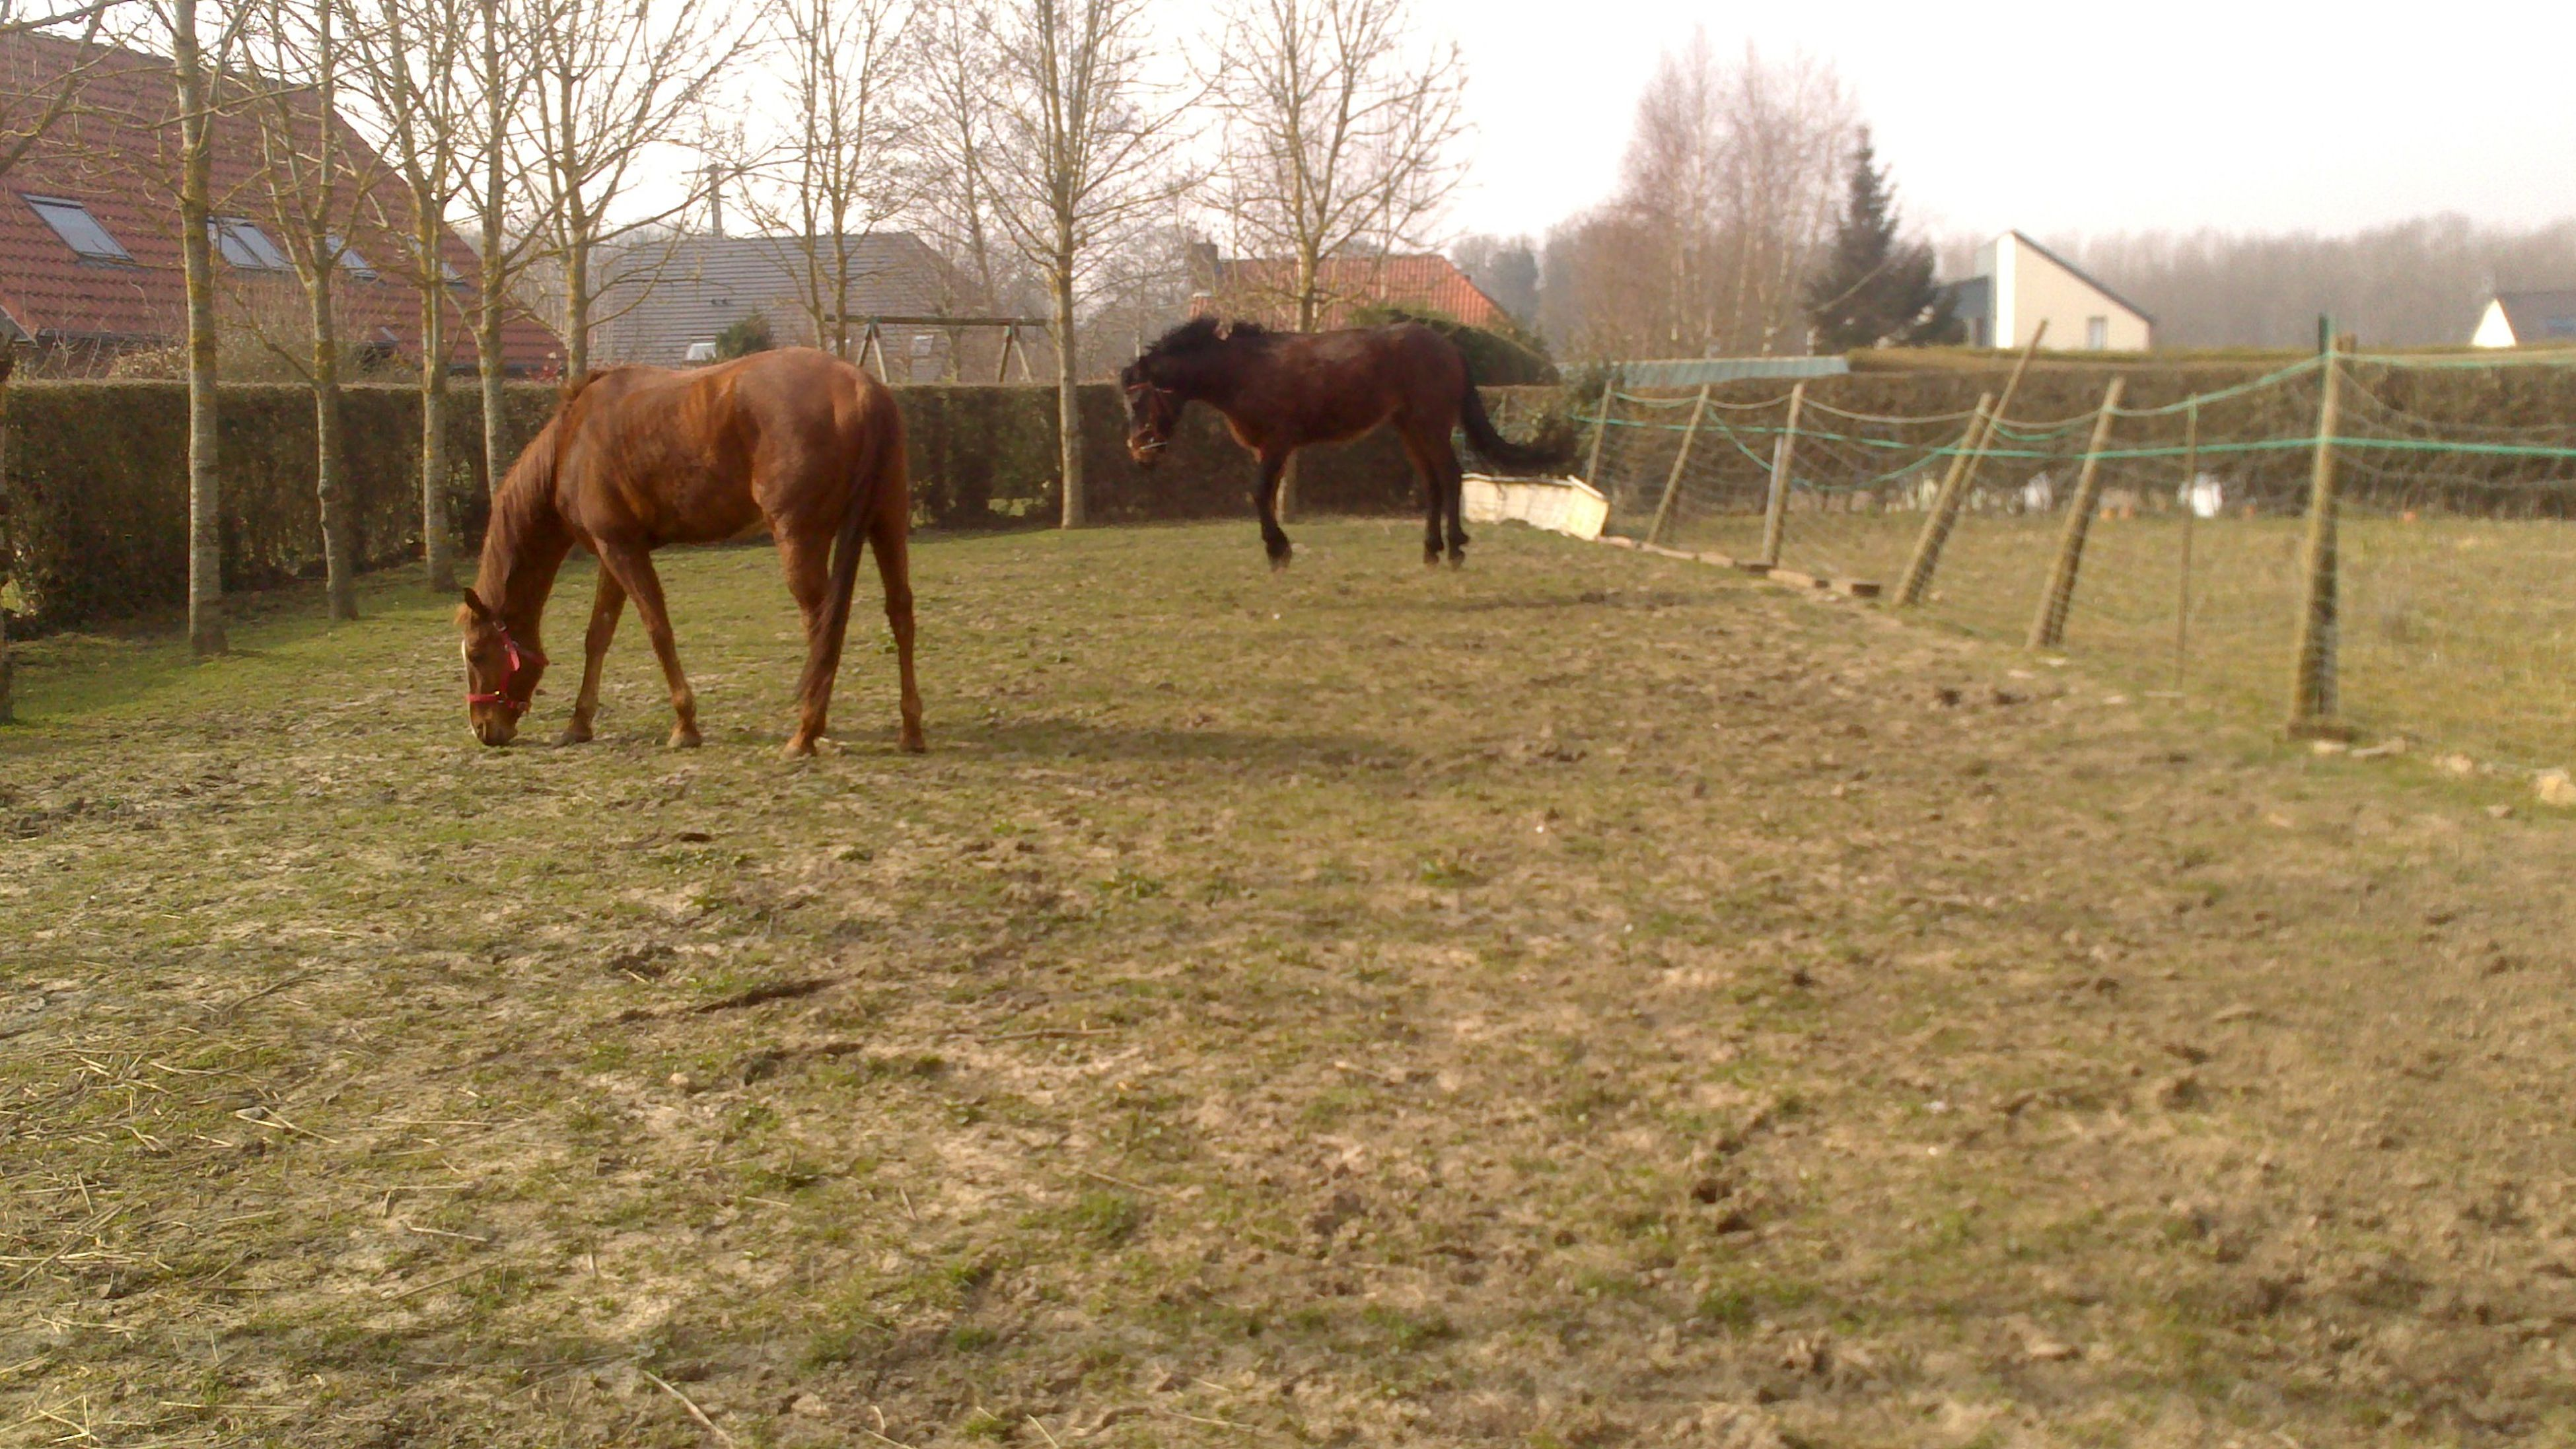 animal themes, domestic animals, mammal, livestock, horse, one animal, field, built structure, grass, fence, building exterior, working animal, architecture, herbivorous, tree, two animals, grazing, standing, full length, day